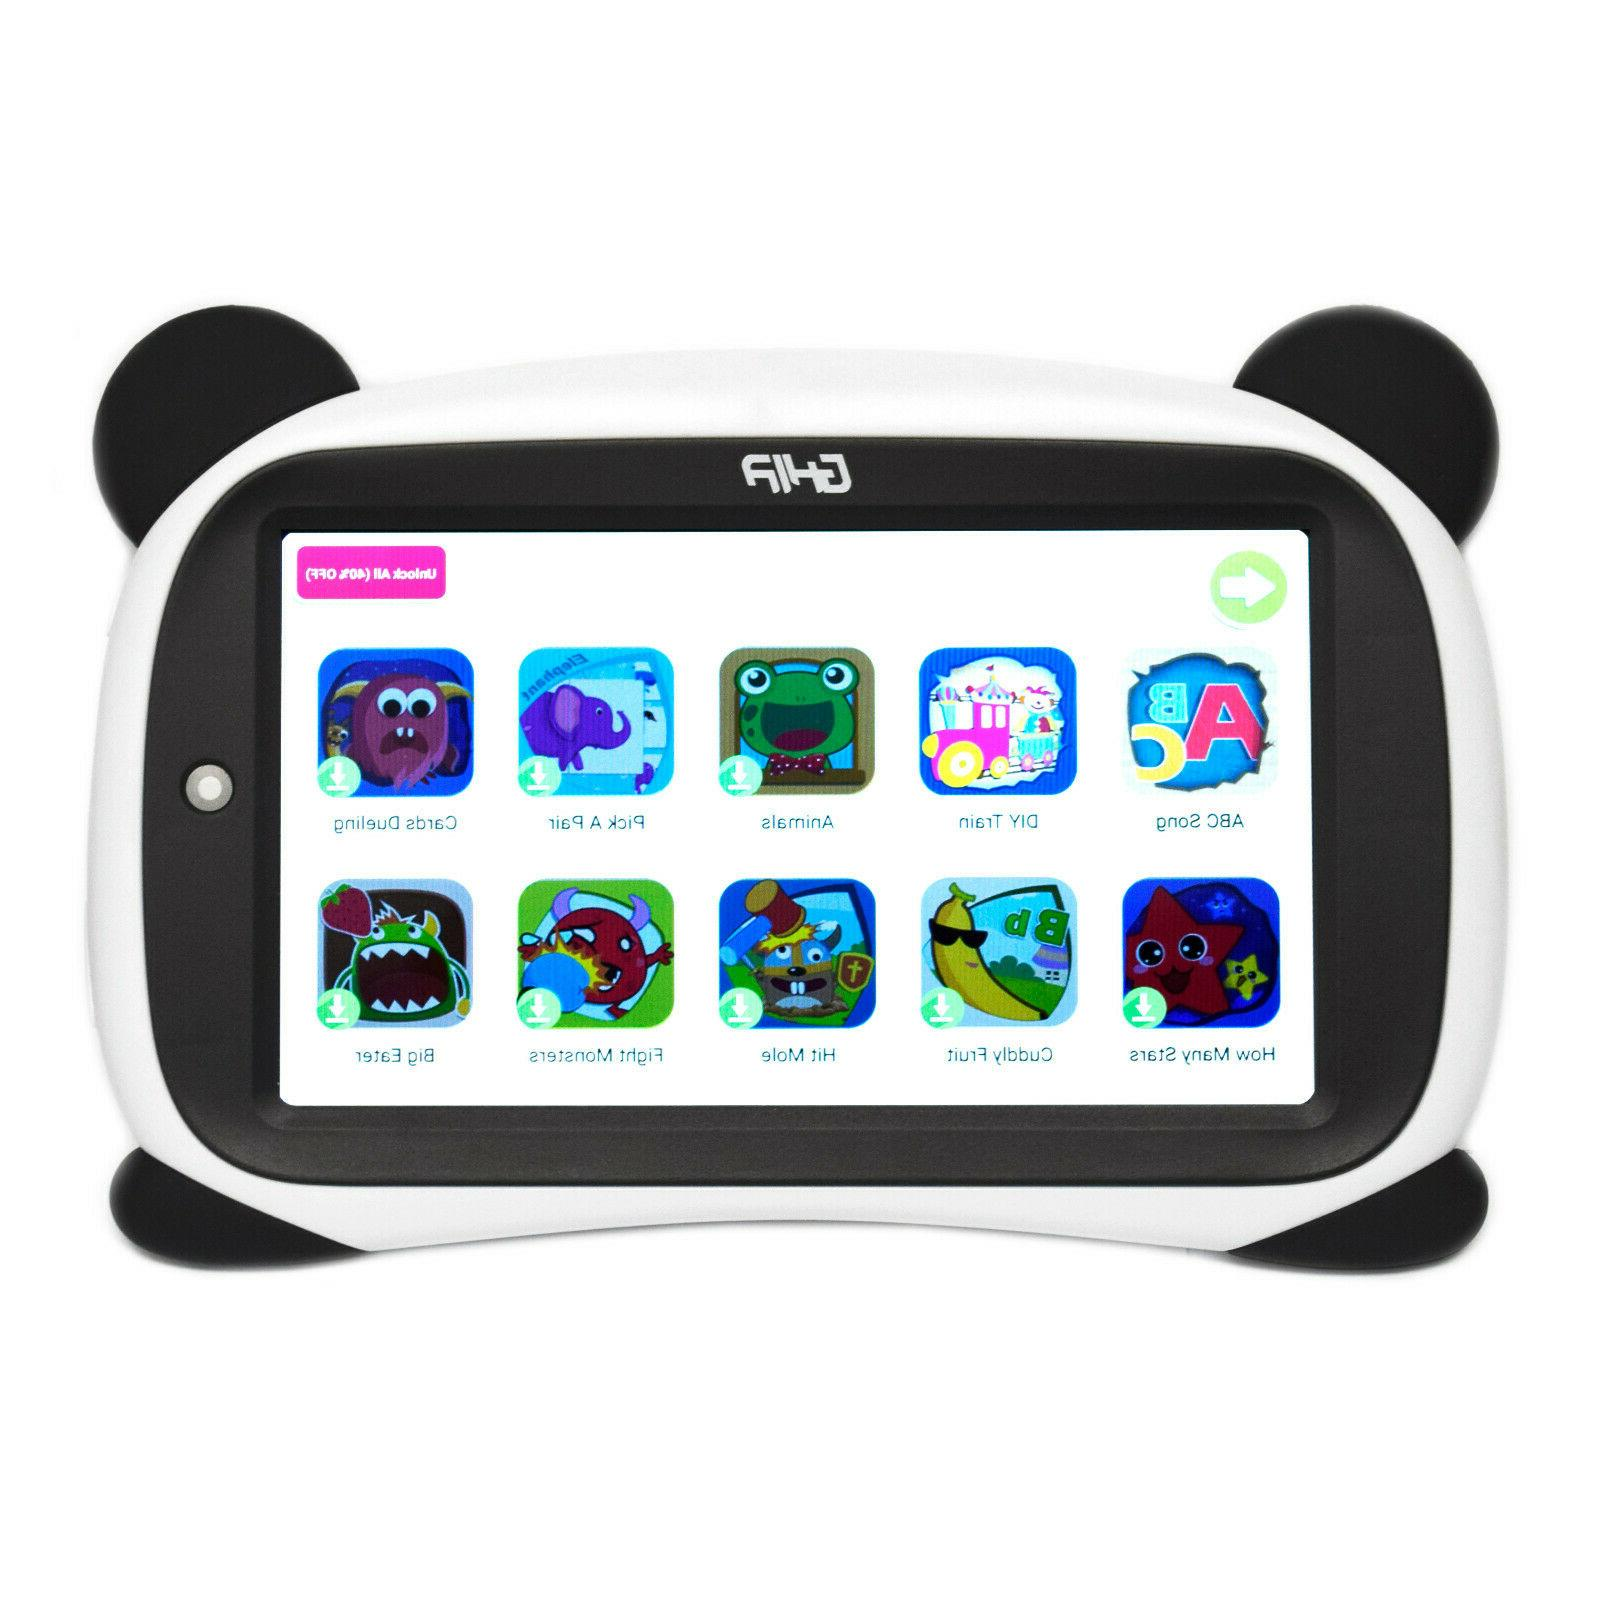 2019 New Google 8.1 Tablet 8GB Case for Kids